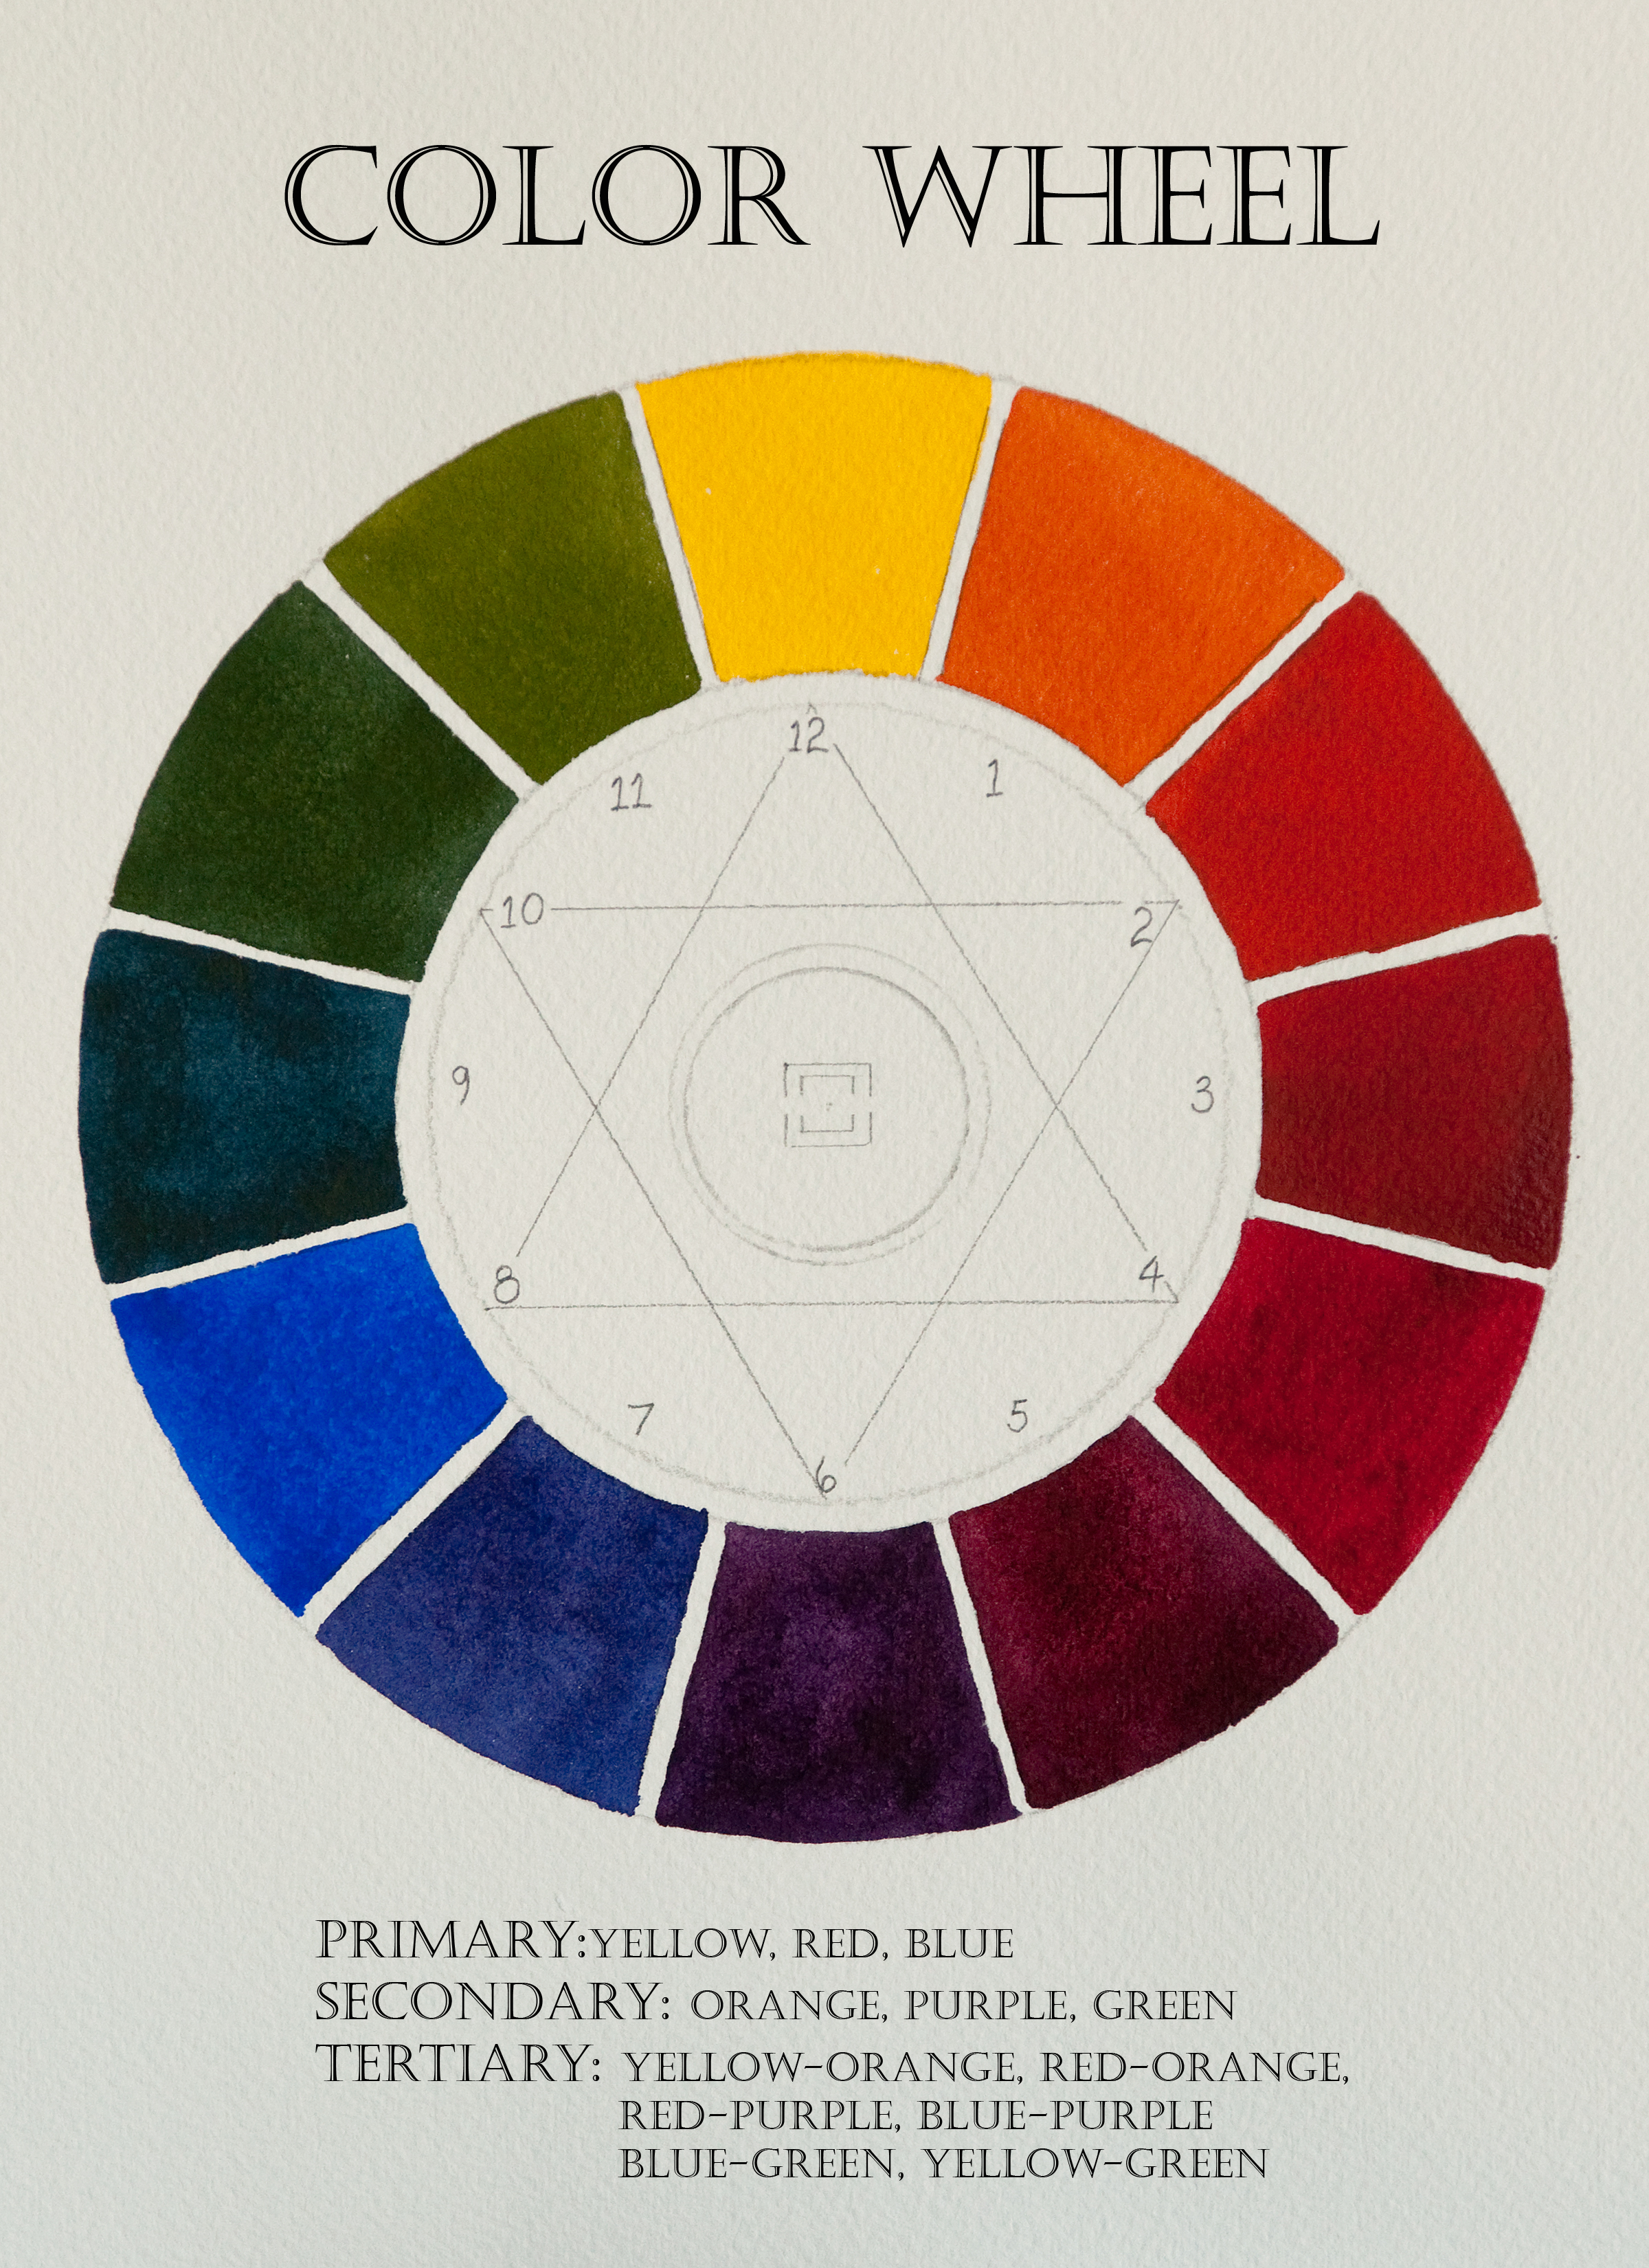 My Beginning Watercolor Students Are Required To Make A Color Wheel This Exercise Is Not